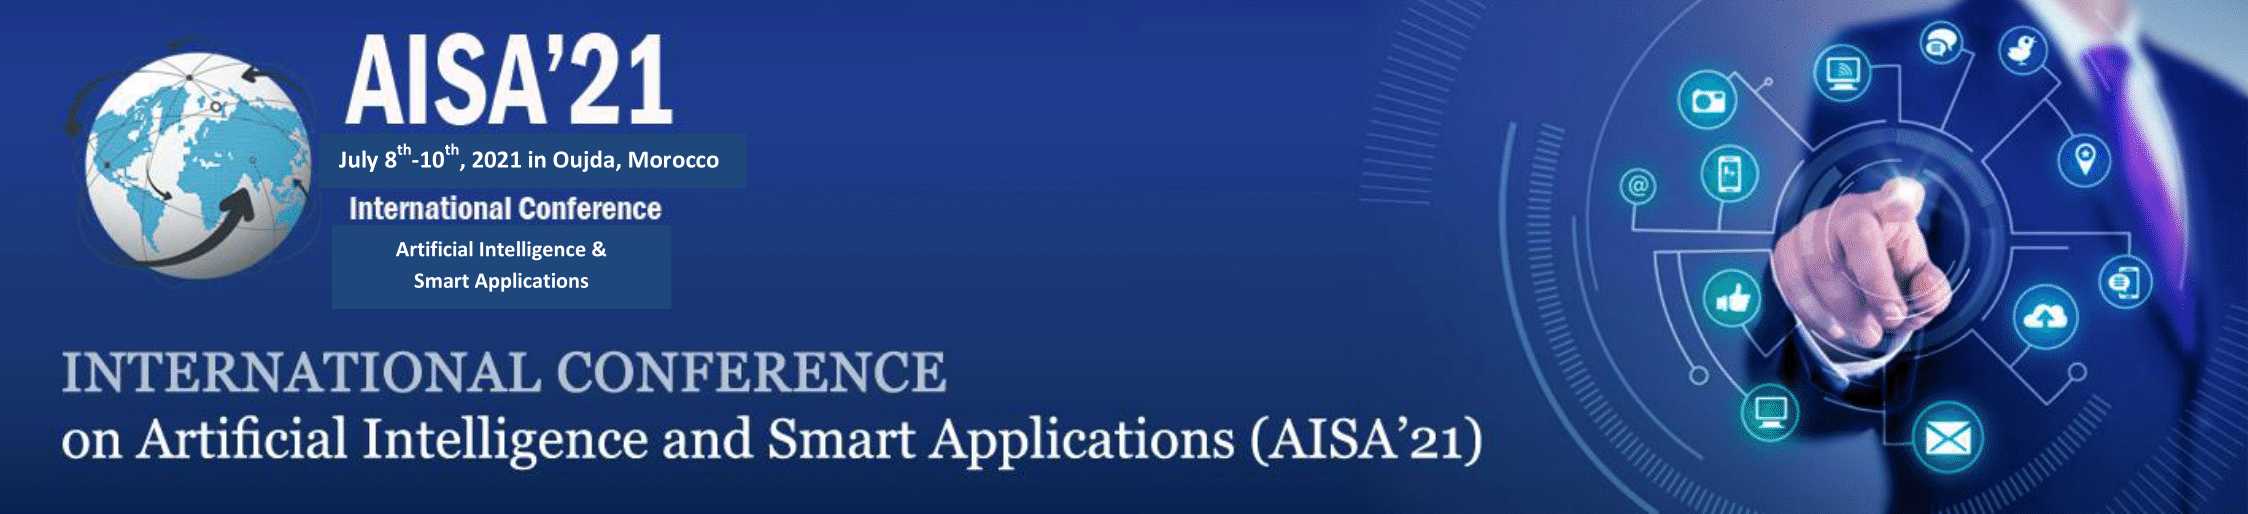 AISA'21 (The first International Conference on Artificial Intelligence and Smart Applications) du 08 au 10 Juillet 2021